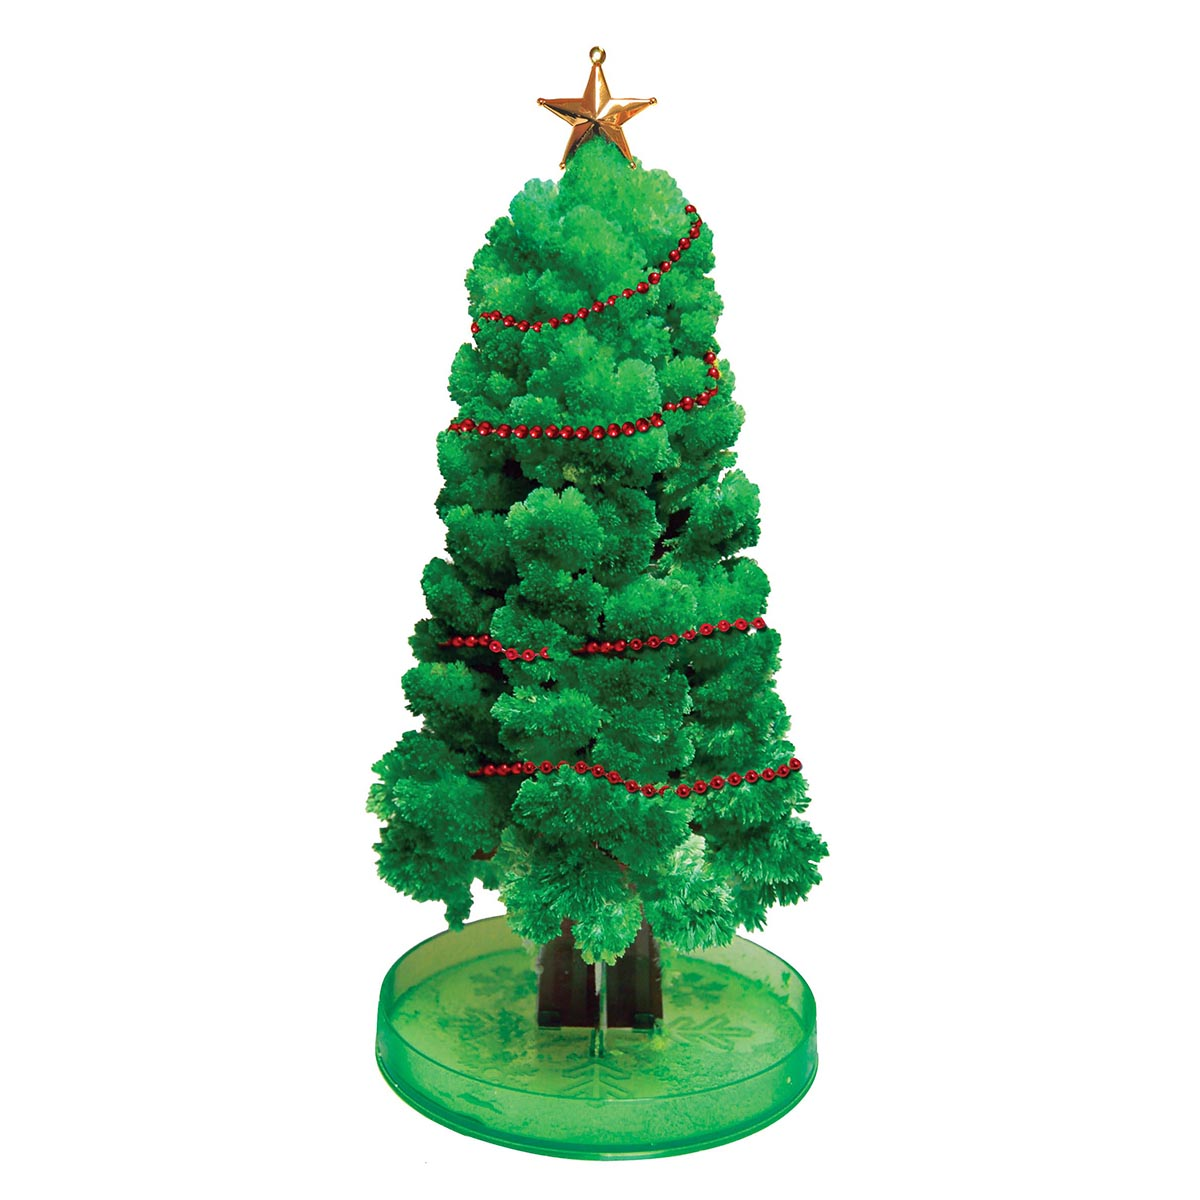 magic crystal growers christmas tree jumbo size - Crystal Christmas Tree